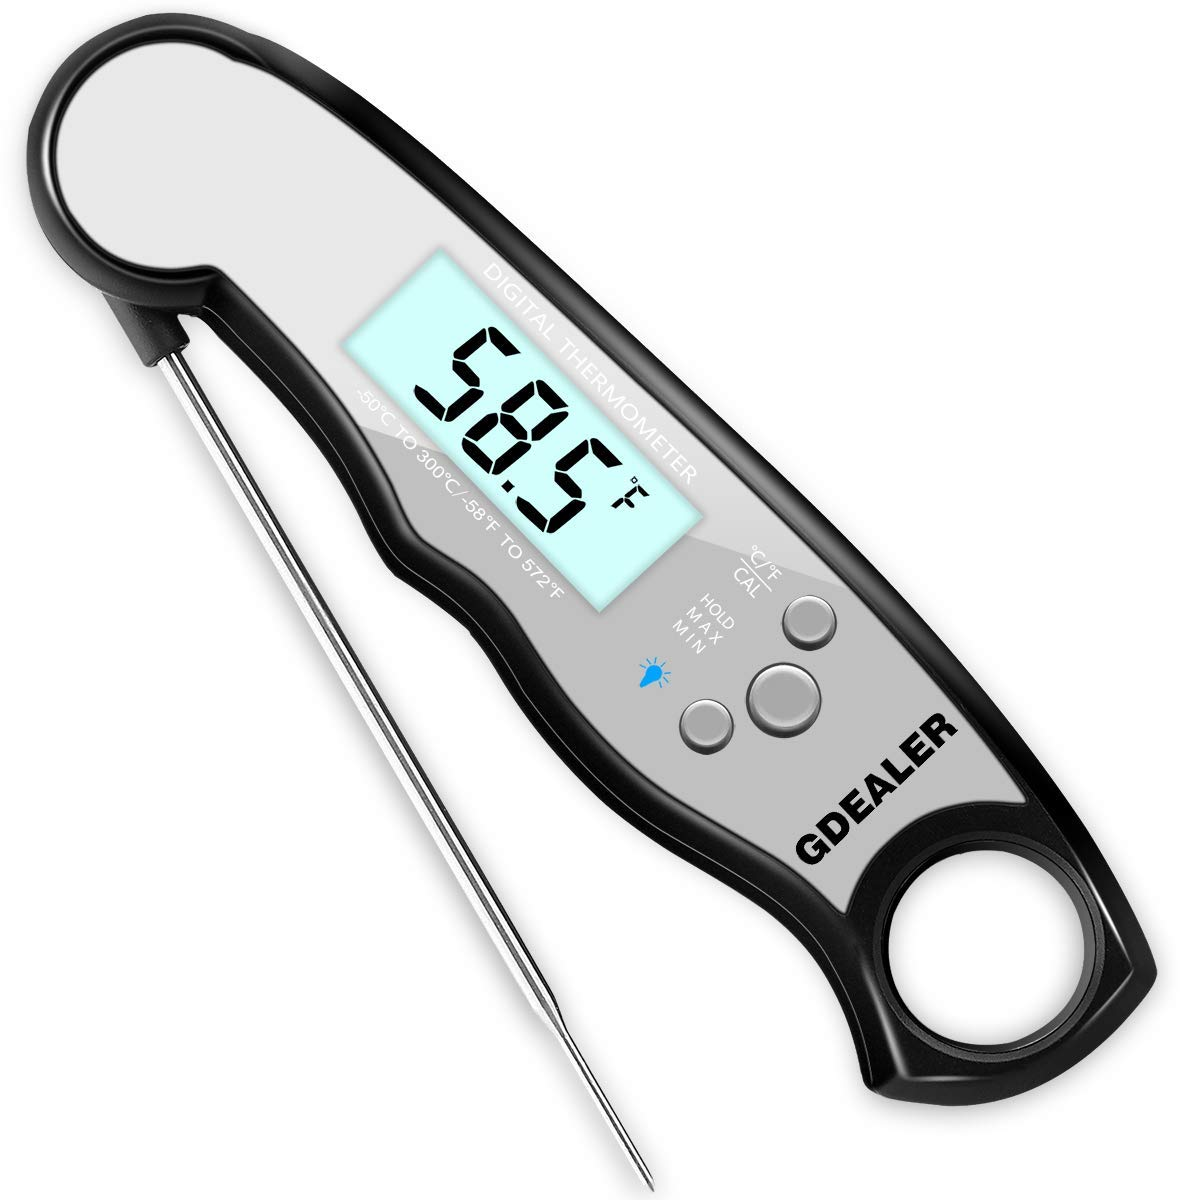 Review of GDEALER Waterproof Meat Digital Thermometer